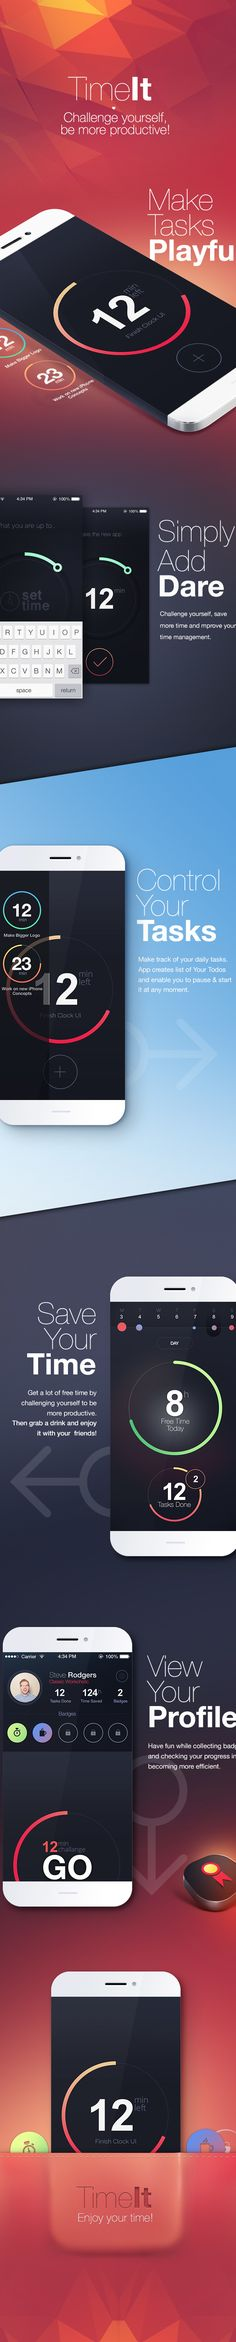 TimeIt - Challange Yourself by Michał Sambora, via Behance